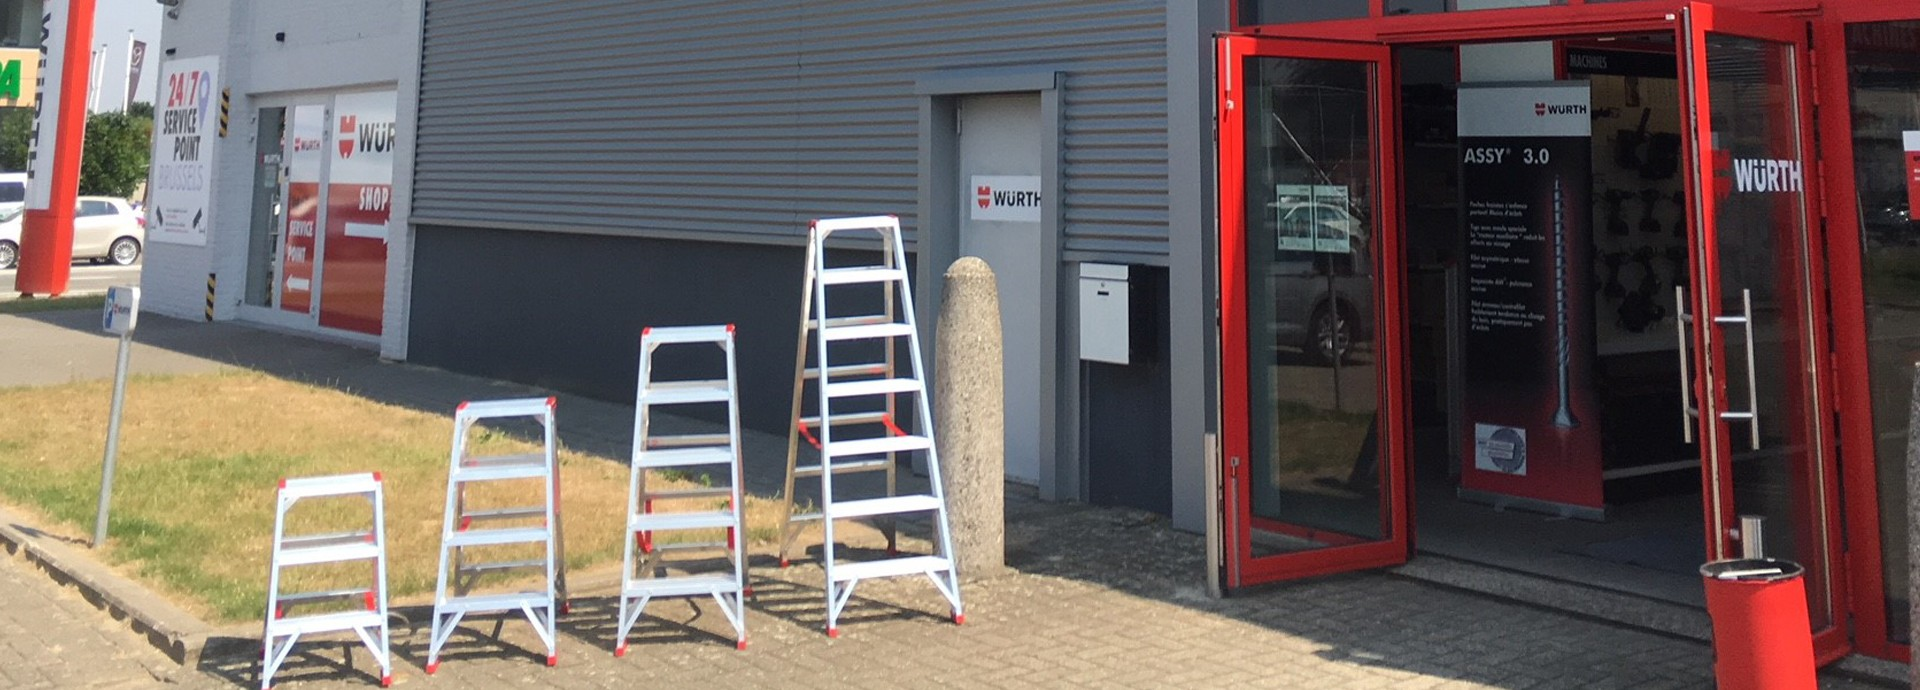 Würth Shop St Stevens Woluwe